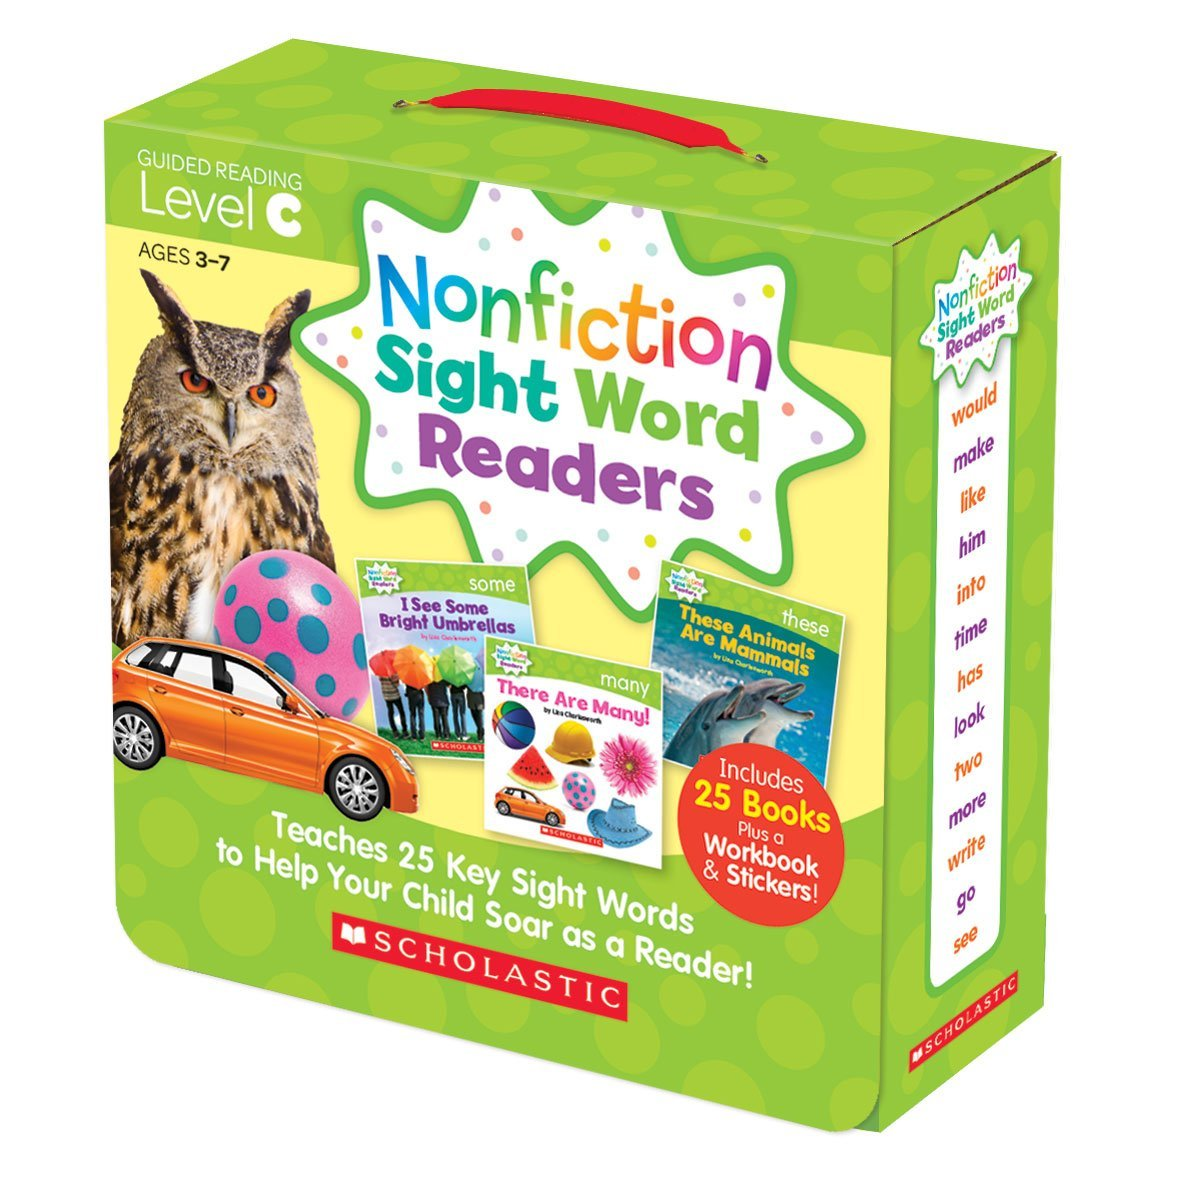 SC 584283 SIGHT WORD READERS LEVEL C